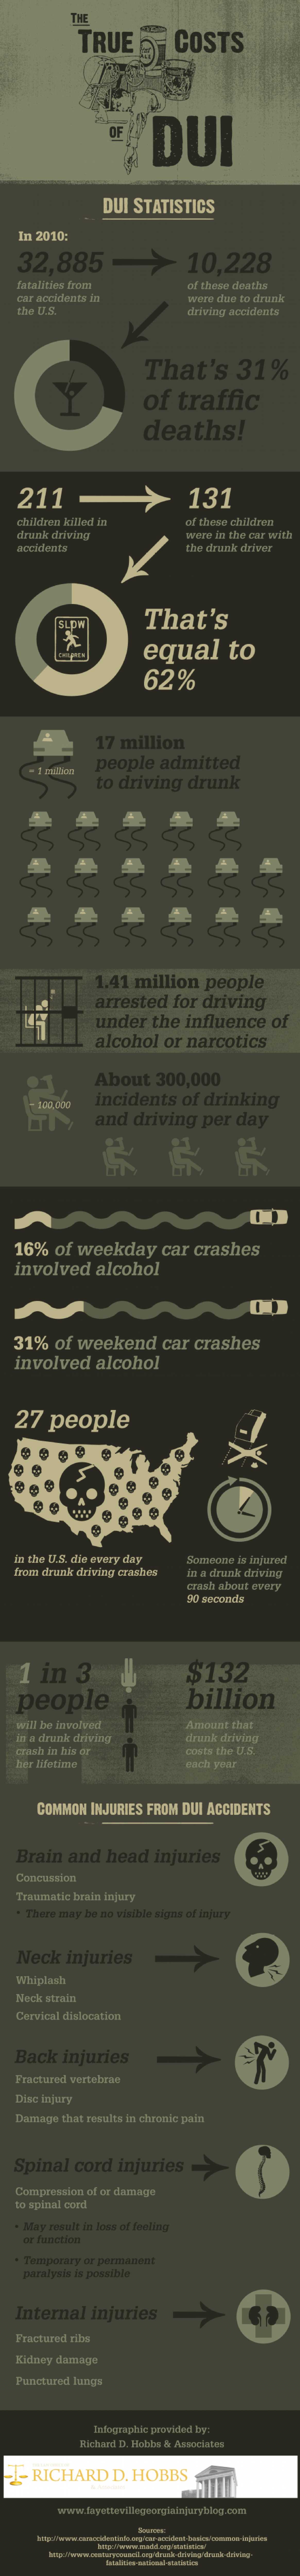 The True Costs of DUI Infographic